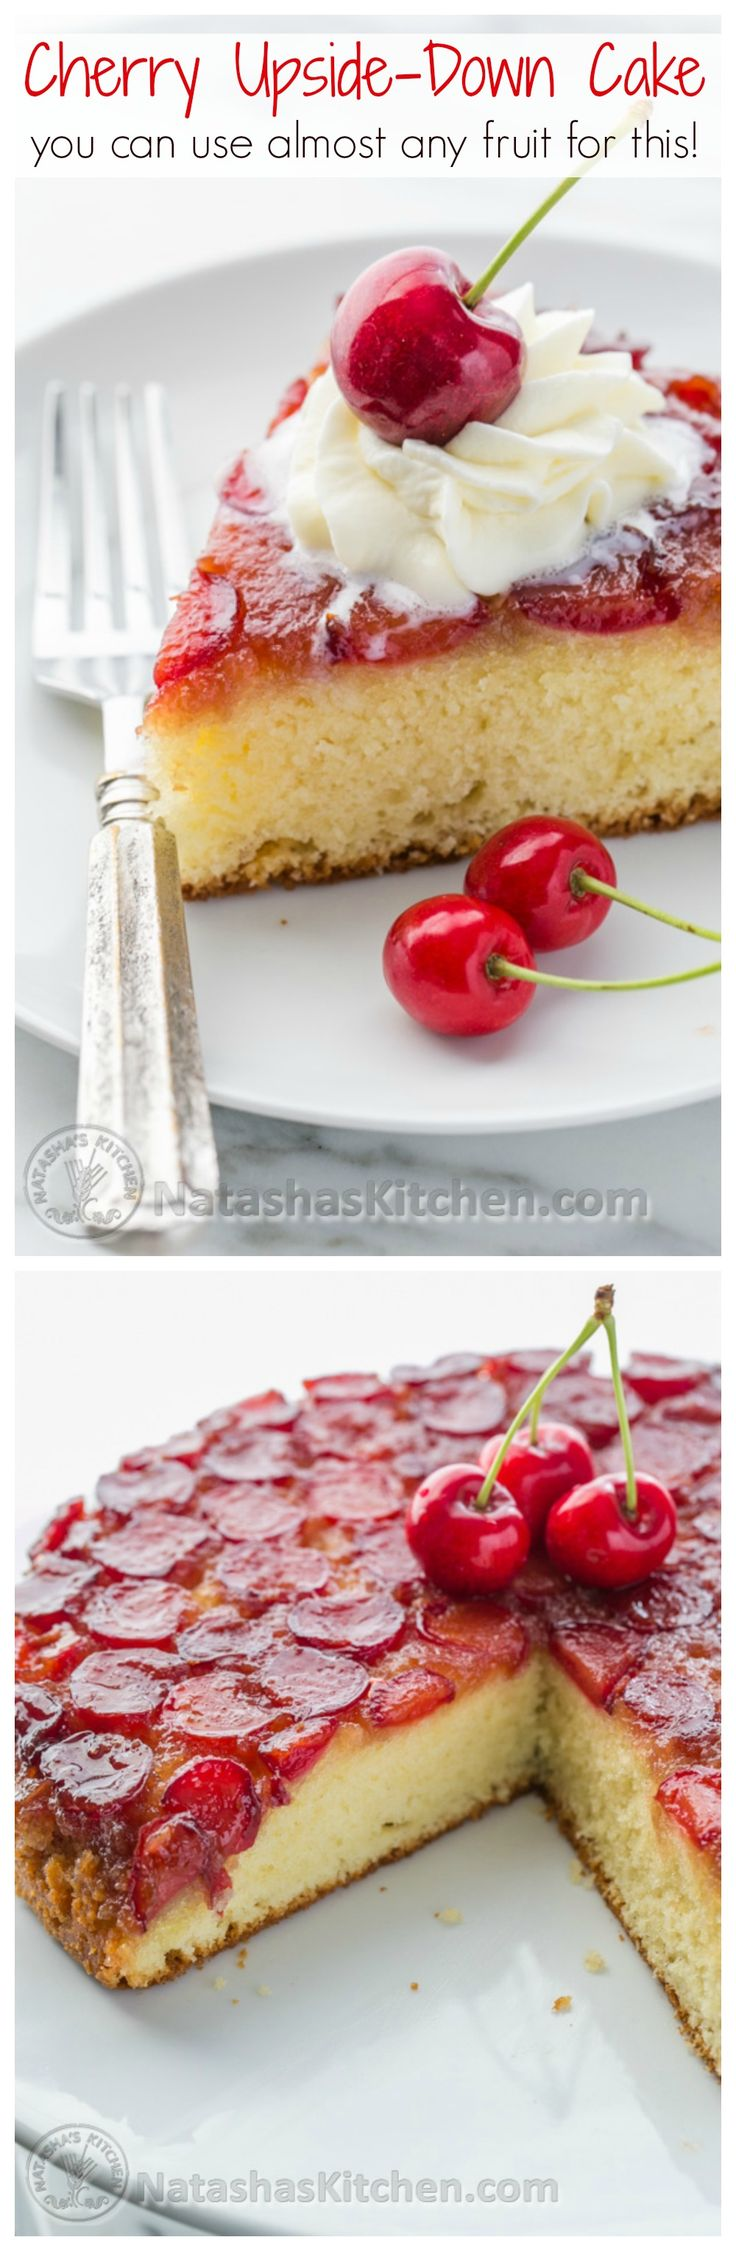 Cherry Upside-Down Cake! Yum! would be so soft, moist, and Delicious!!And you can use just about any kind of fruit! | NatashasKitchen.com